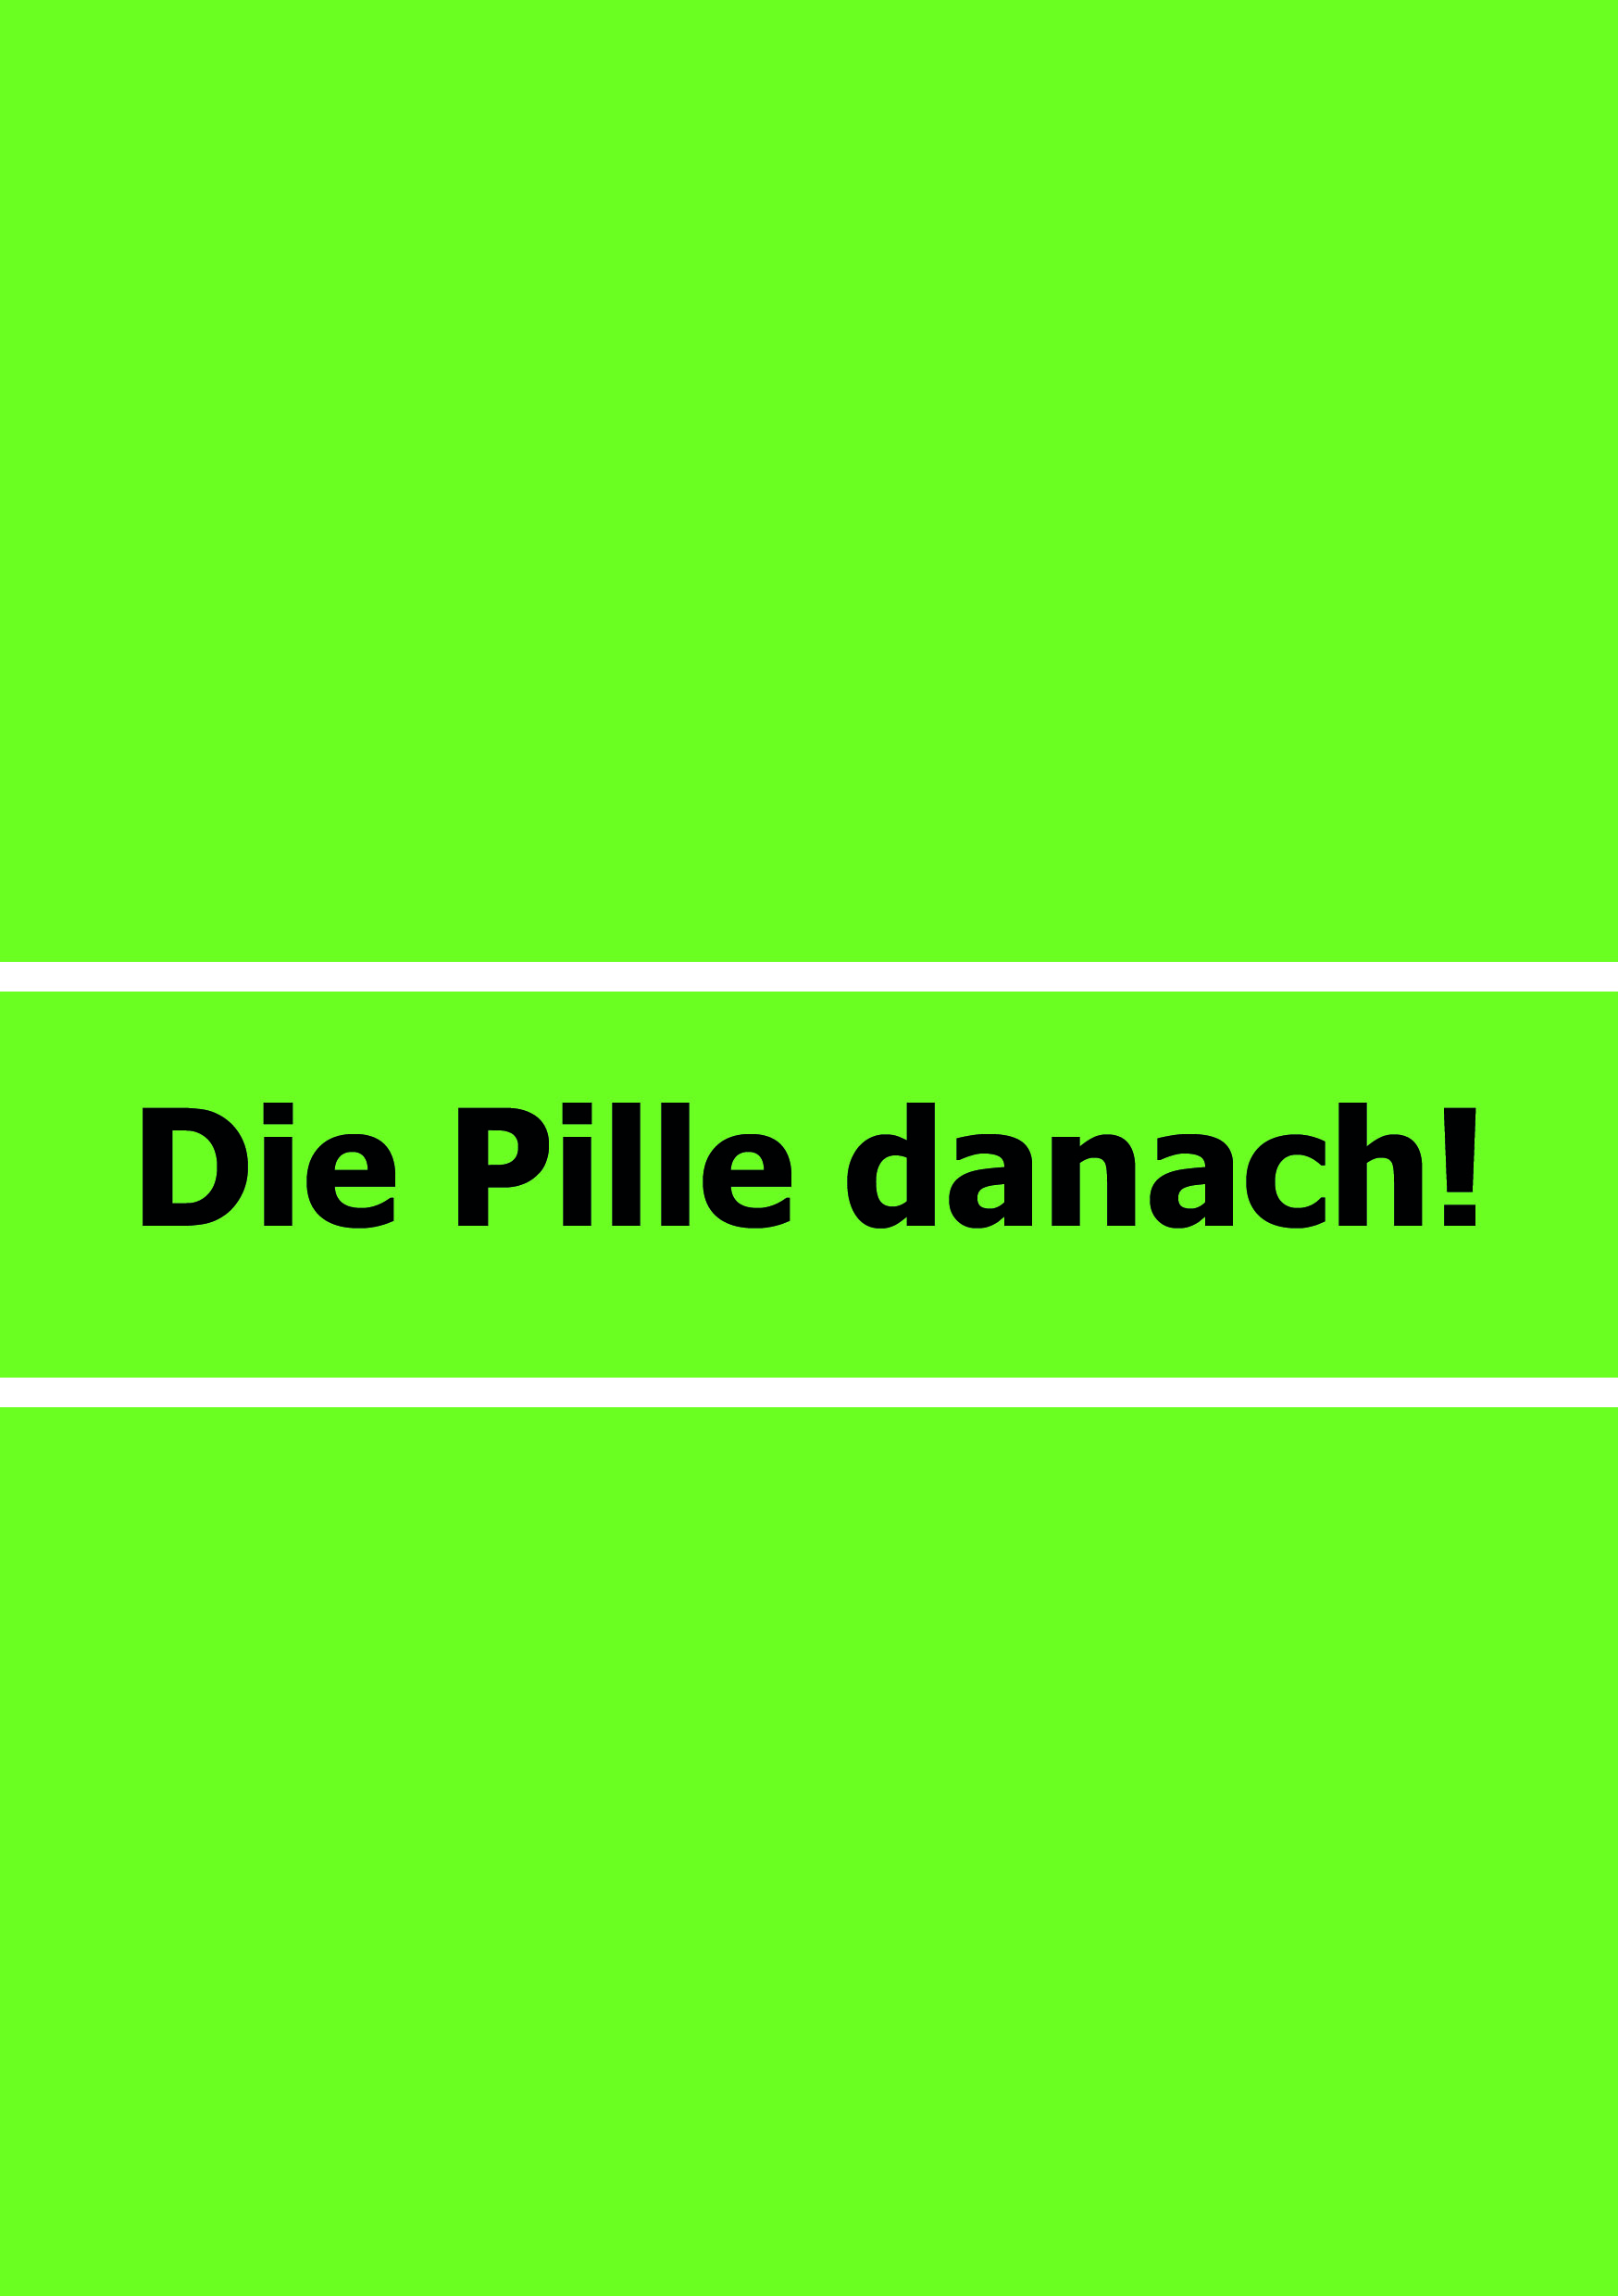 Pille danch